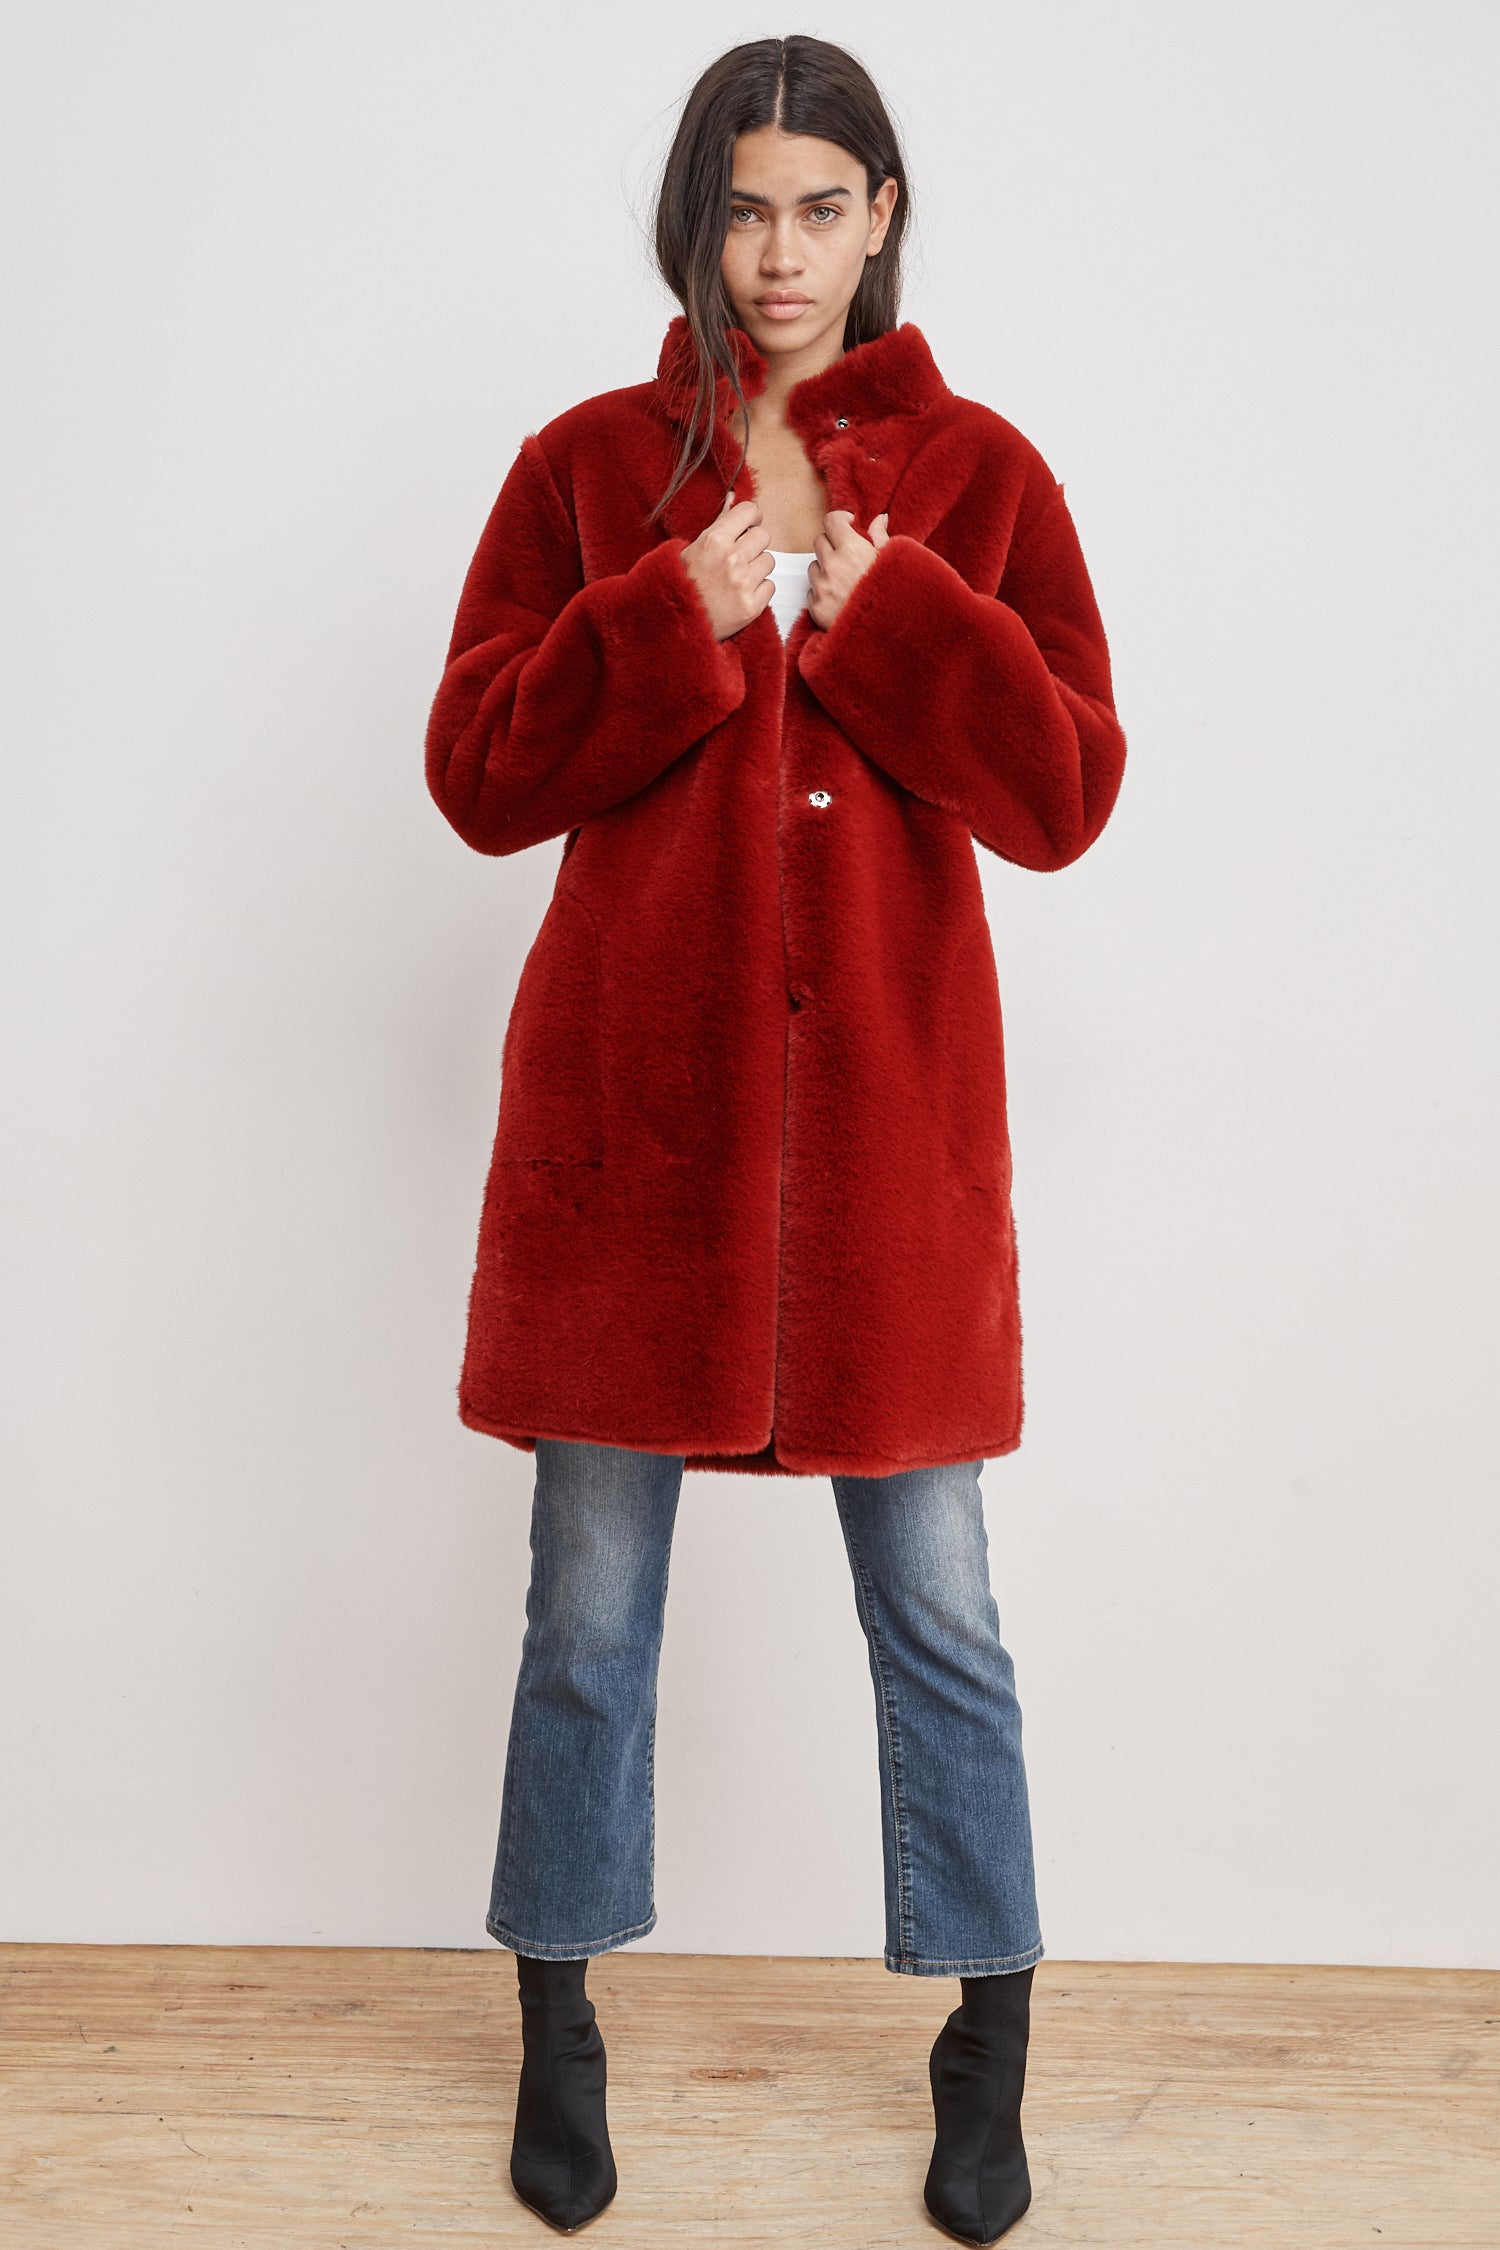 MINA LUX FAUX FUR REVERSIBLE JACKET IN RED